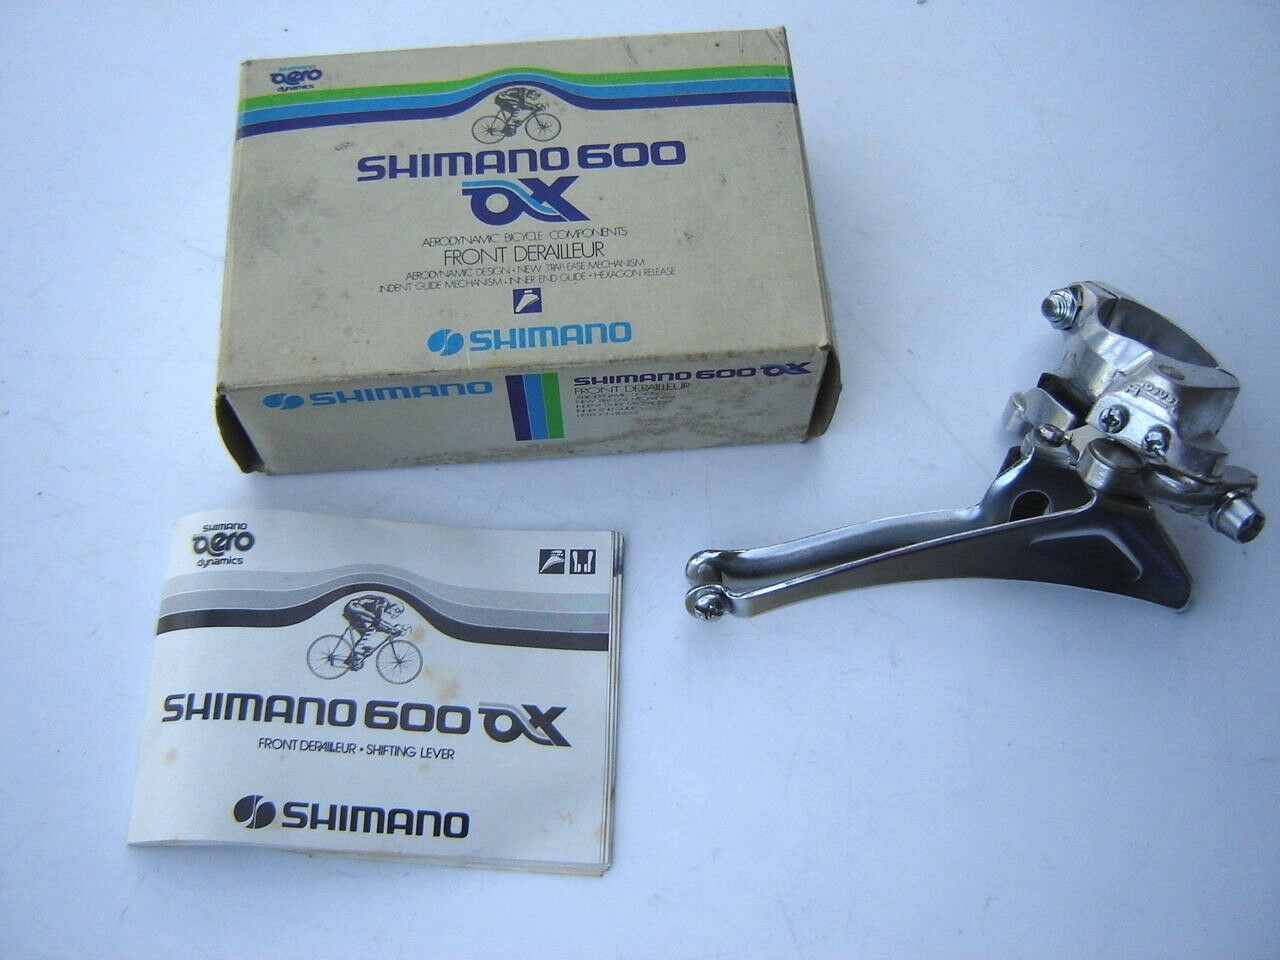 SHIMANO 600 AX FD-6300 CLAMP-ON FRONT DERAILLNOS - NIB